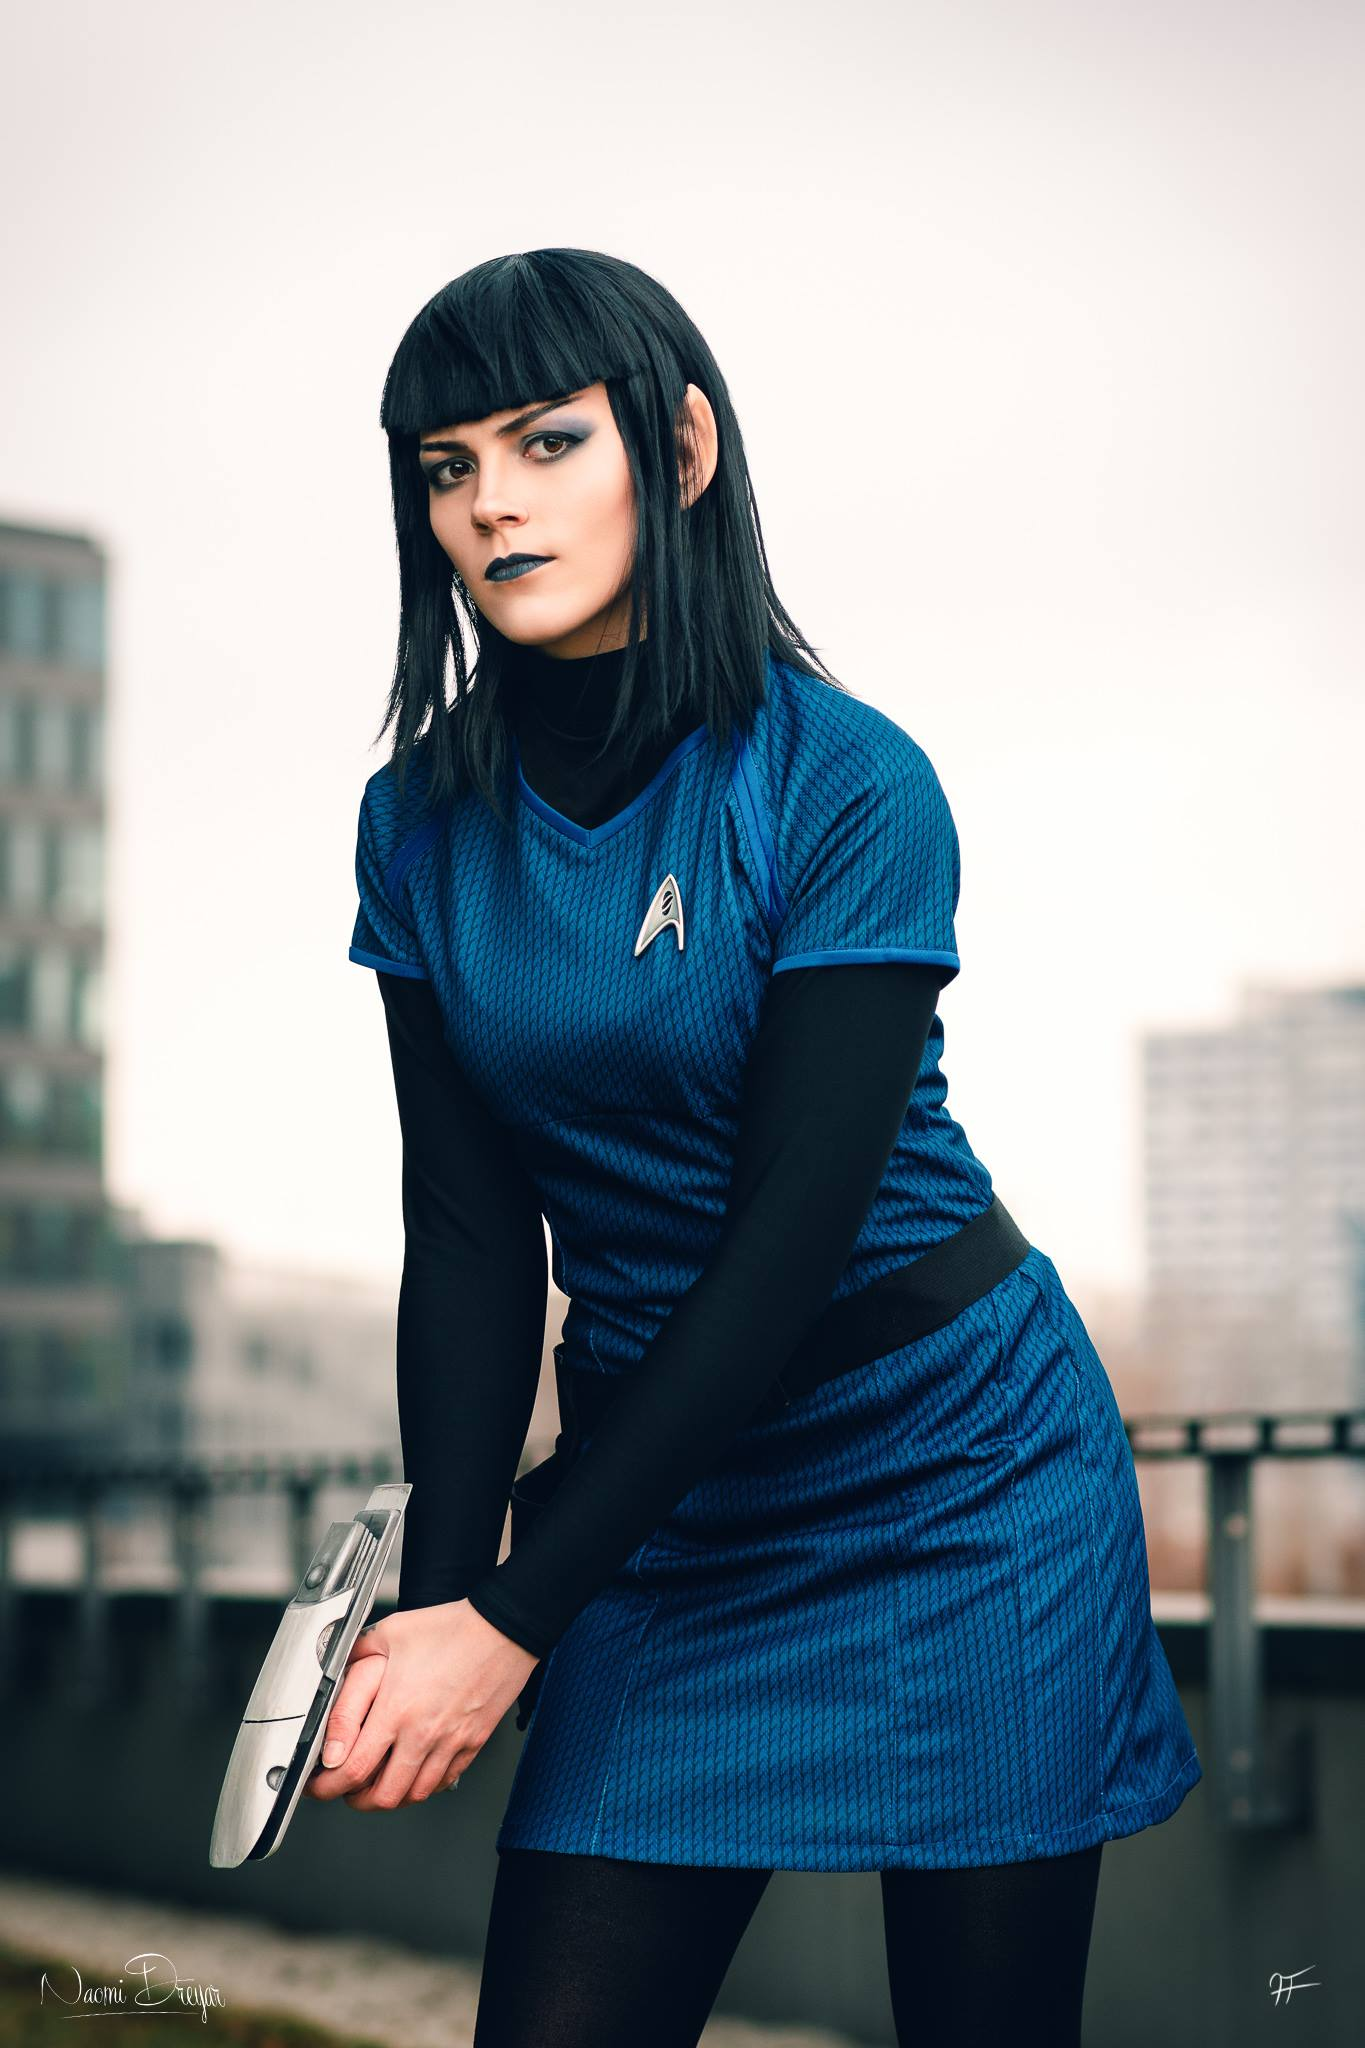 Lady Spock | Star Trek